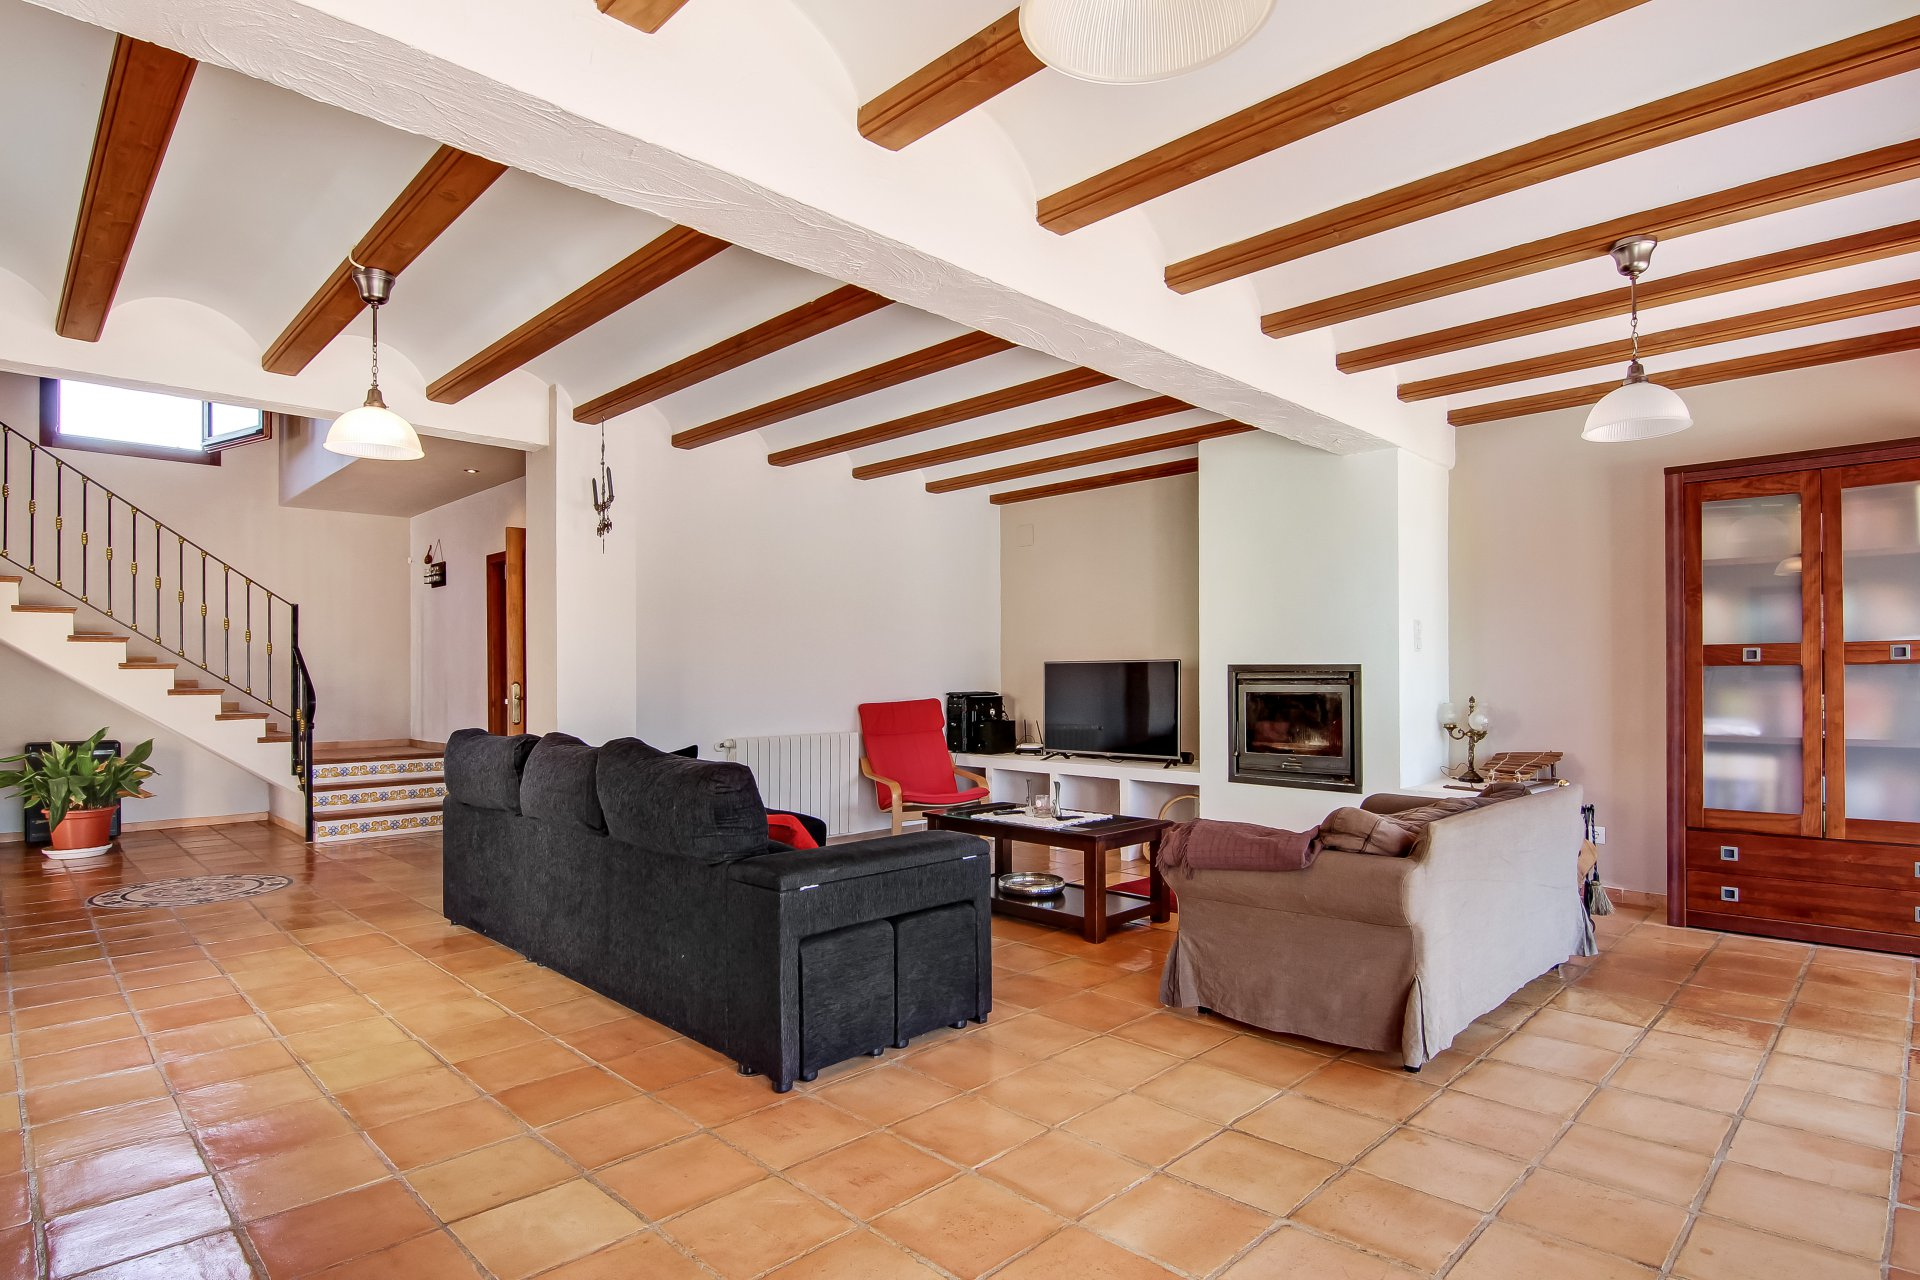 4-Bedroom finca with spectacular country and mountain views